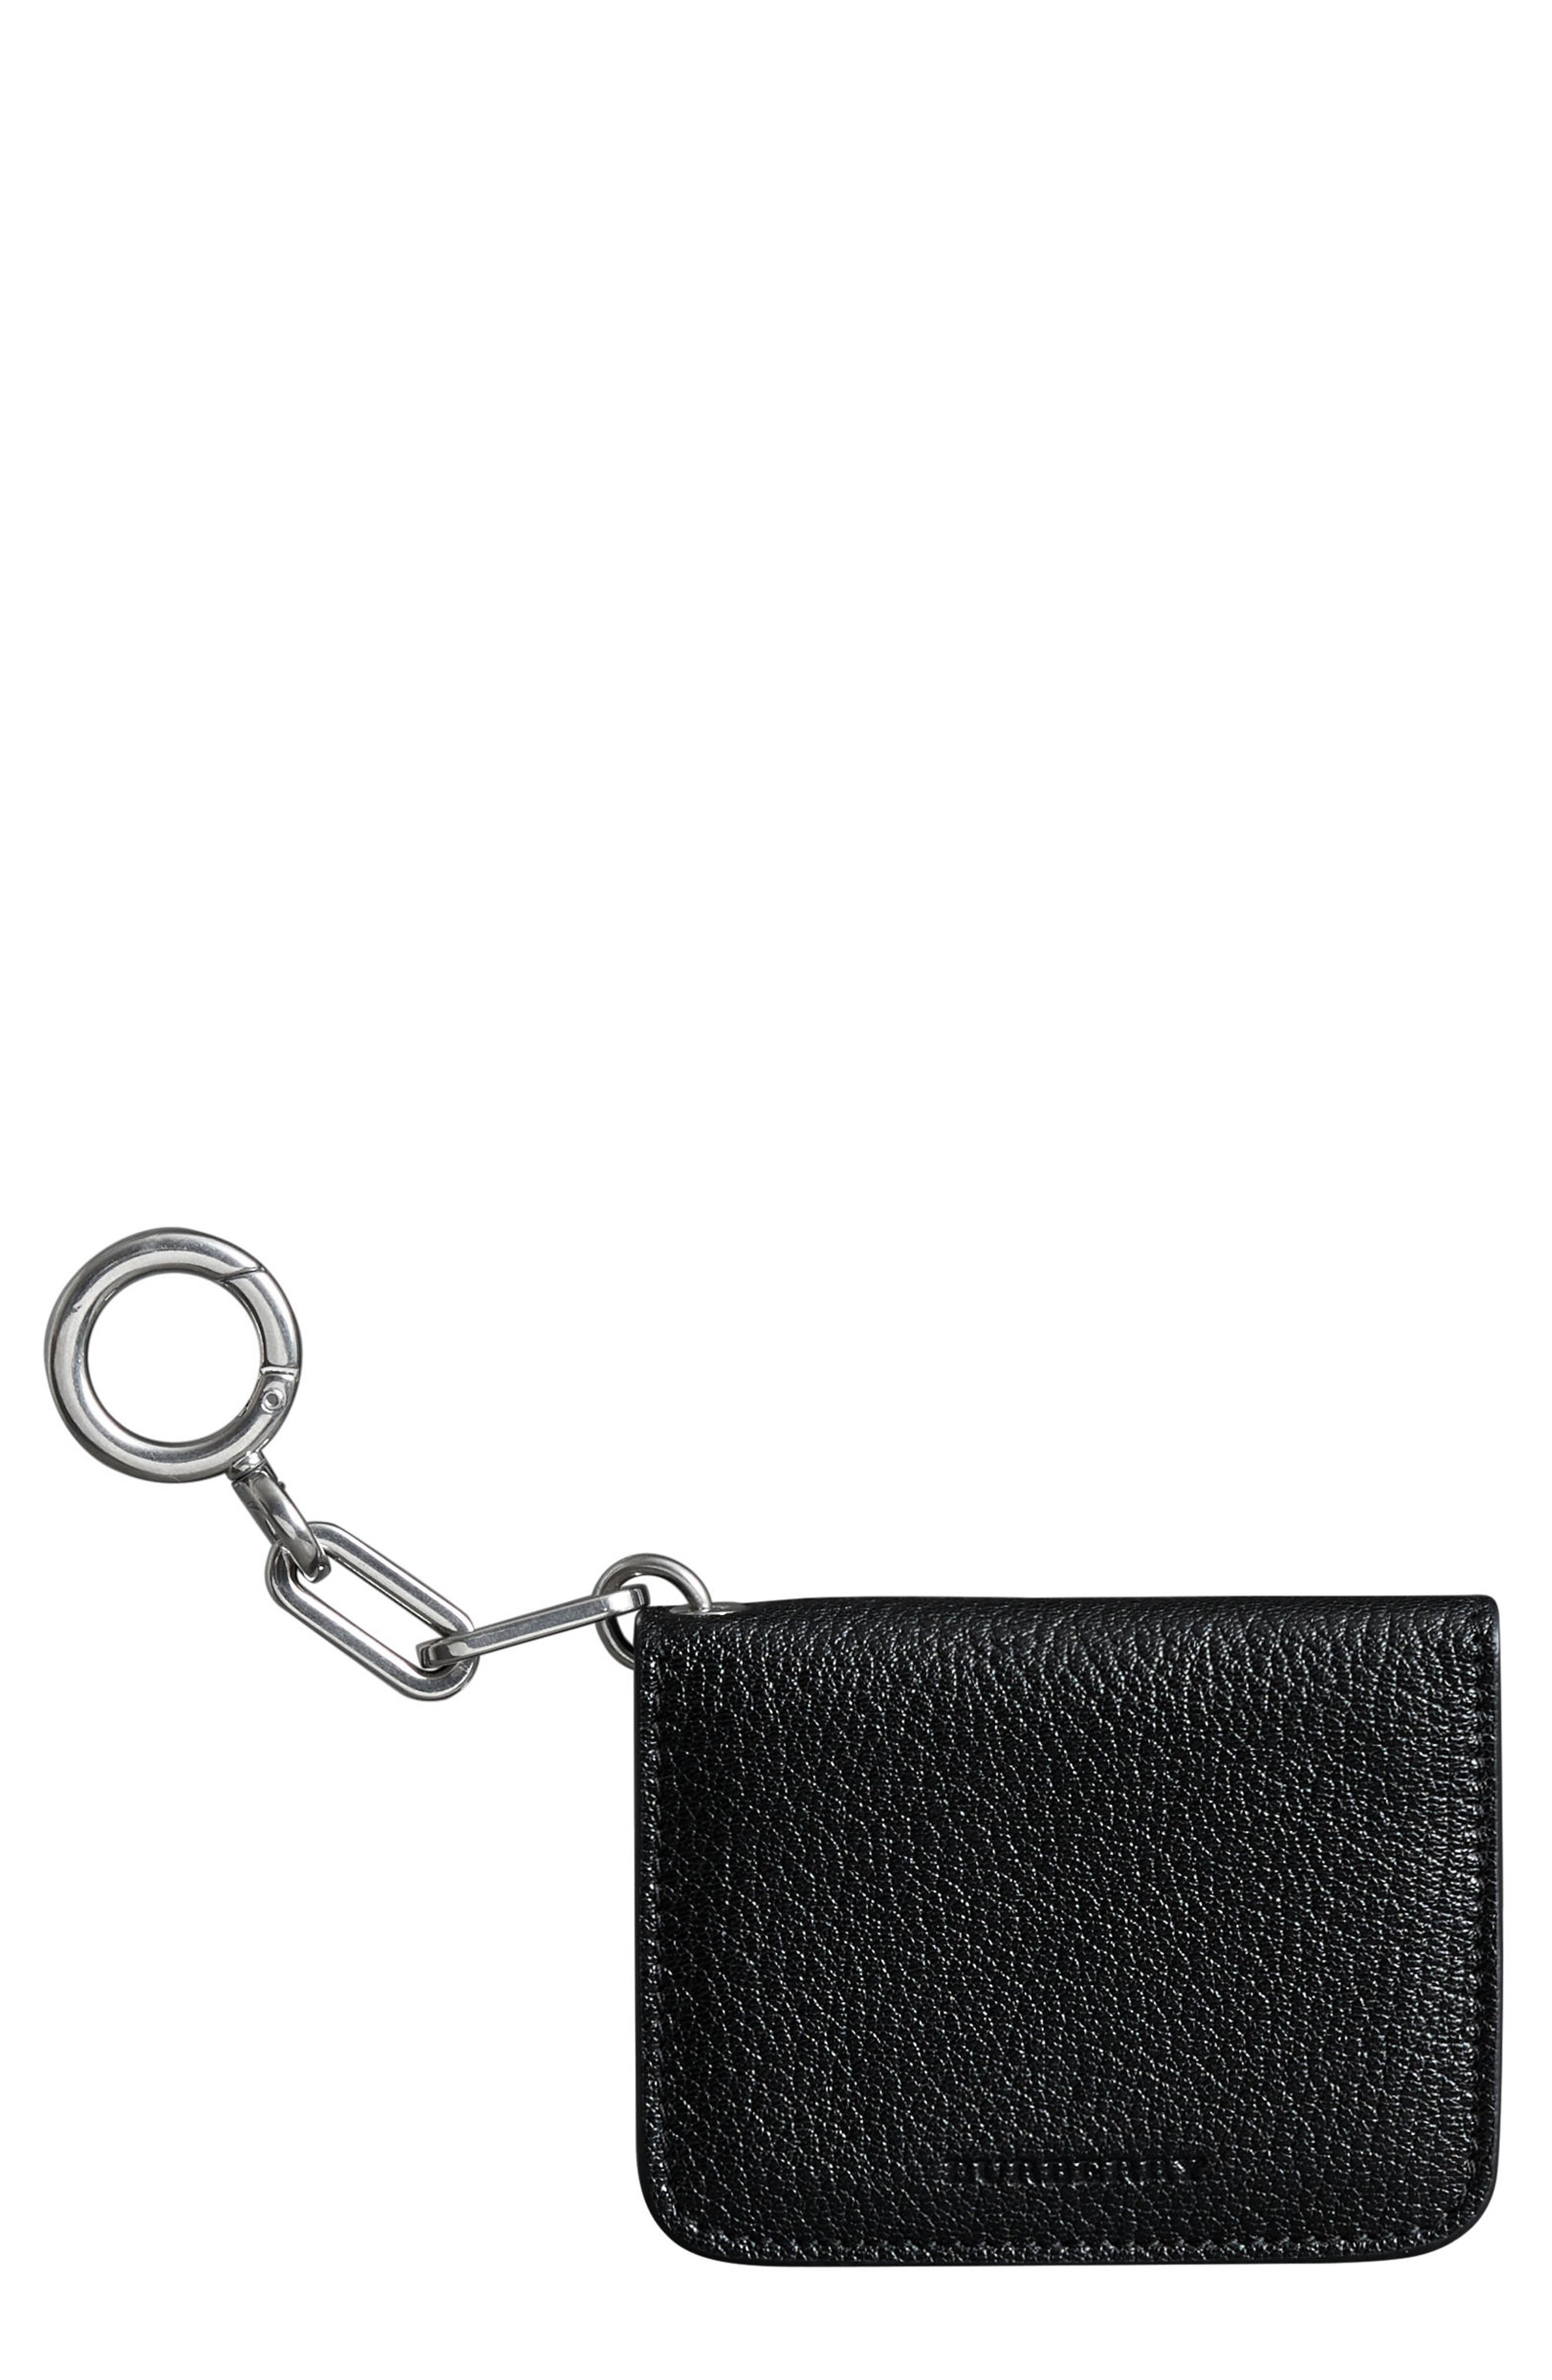 Camberwell Leather ID & Card Case,                         Main,                         color, BLACK